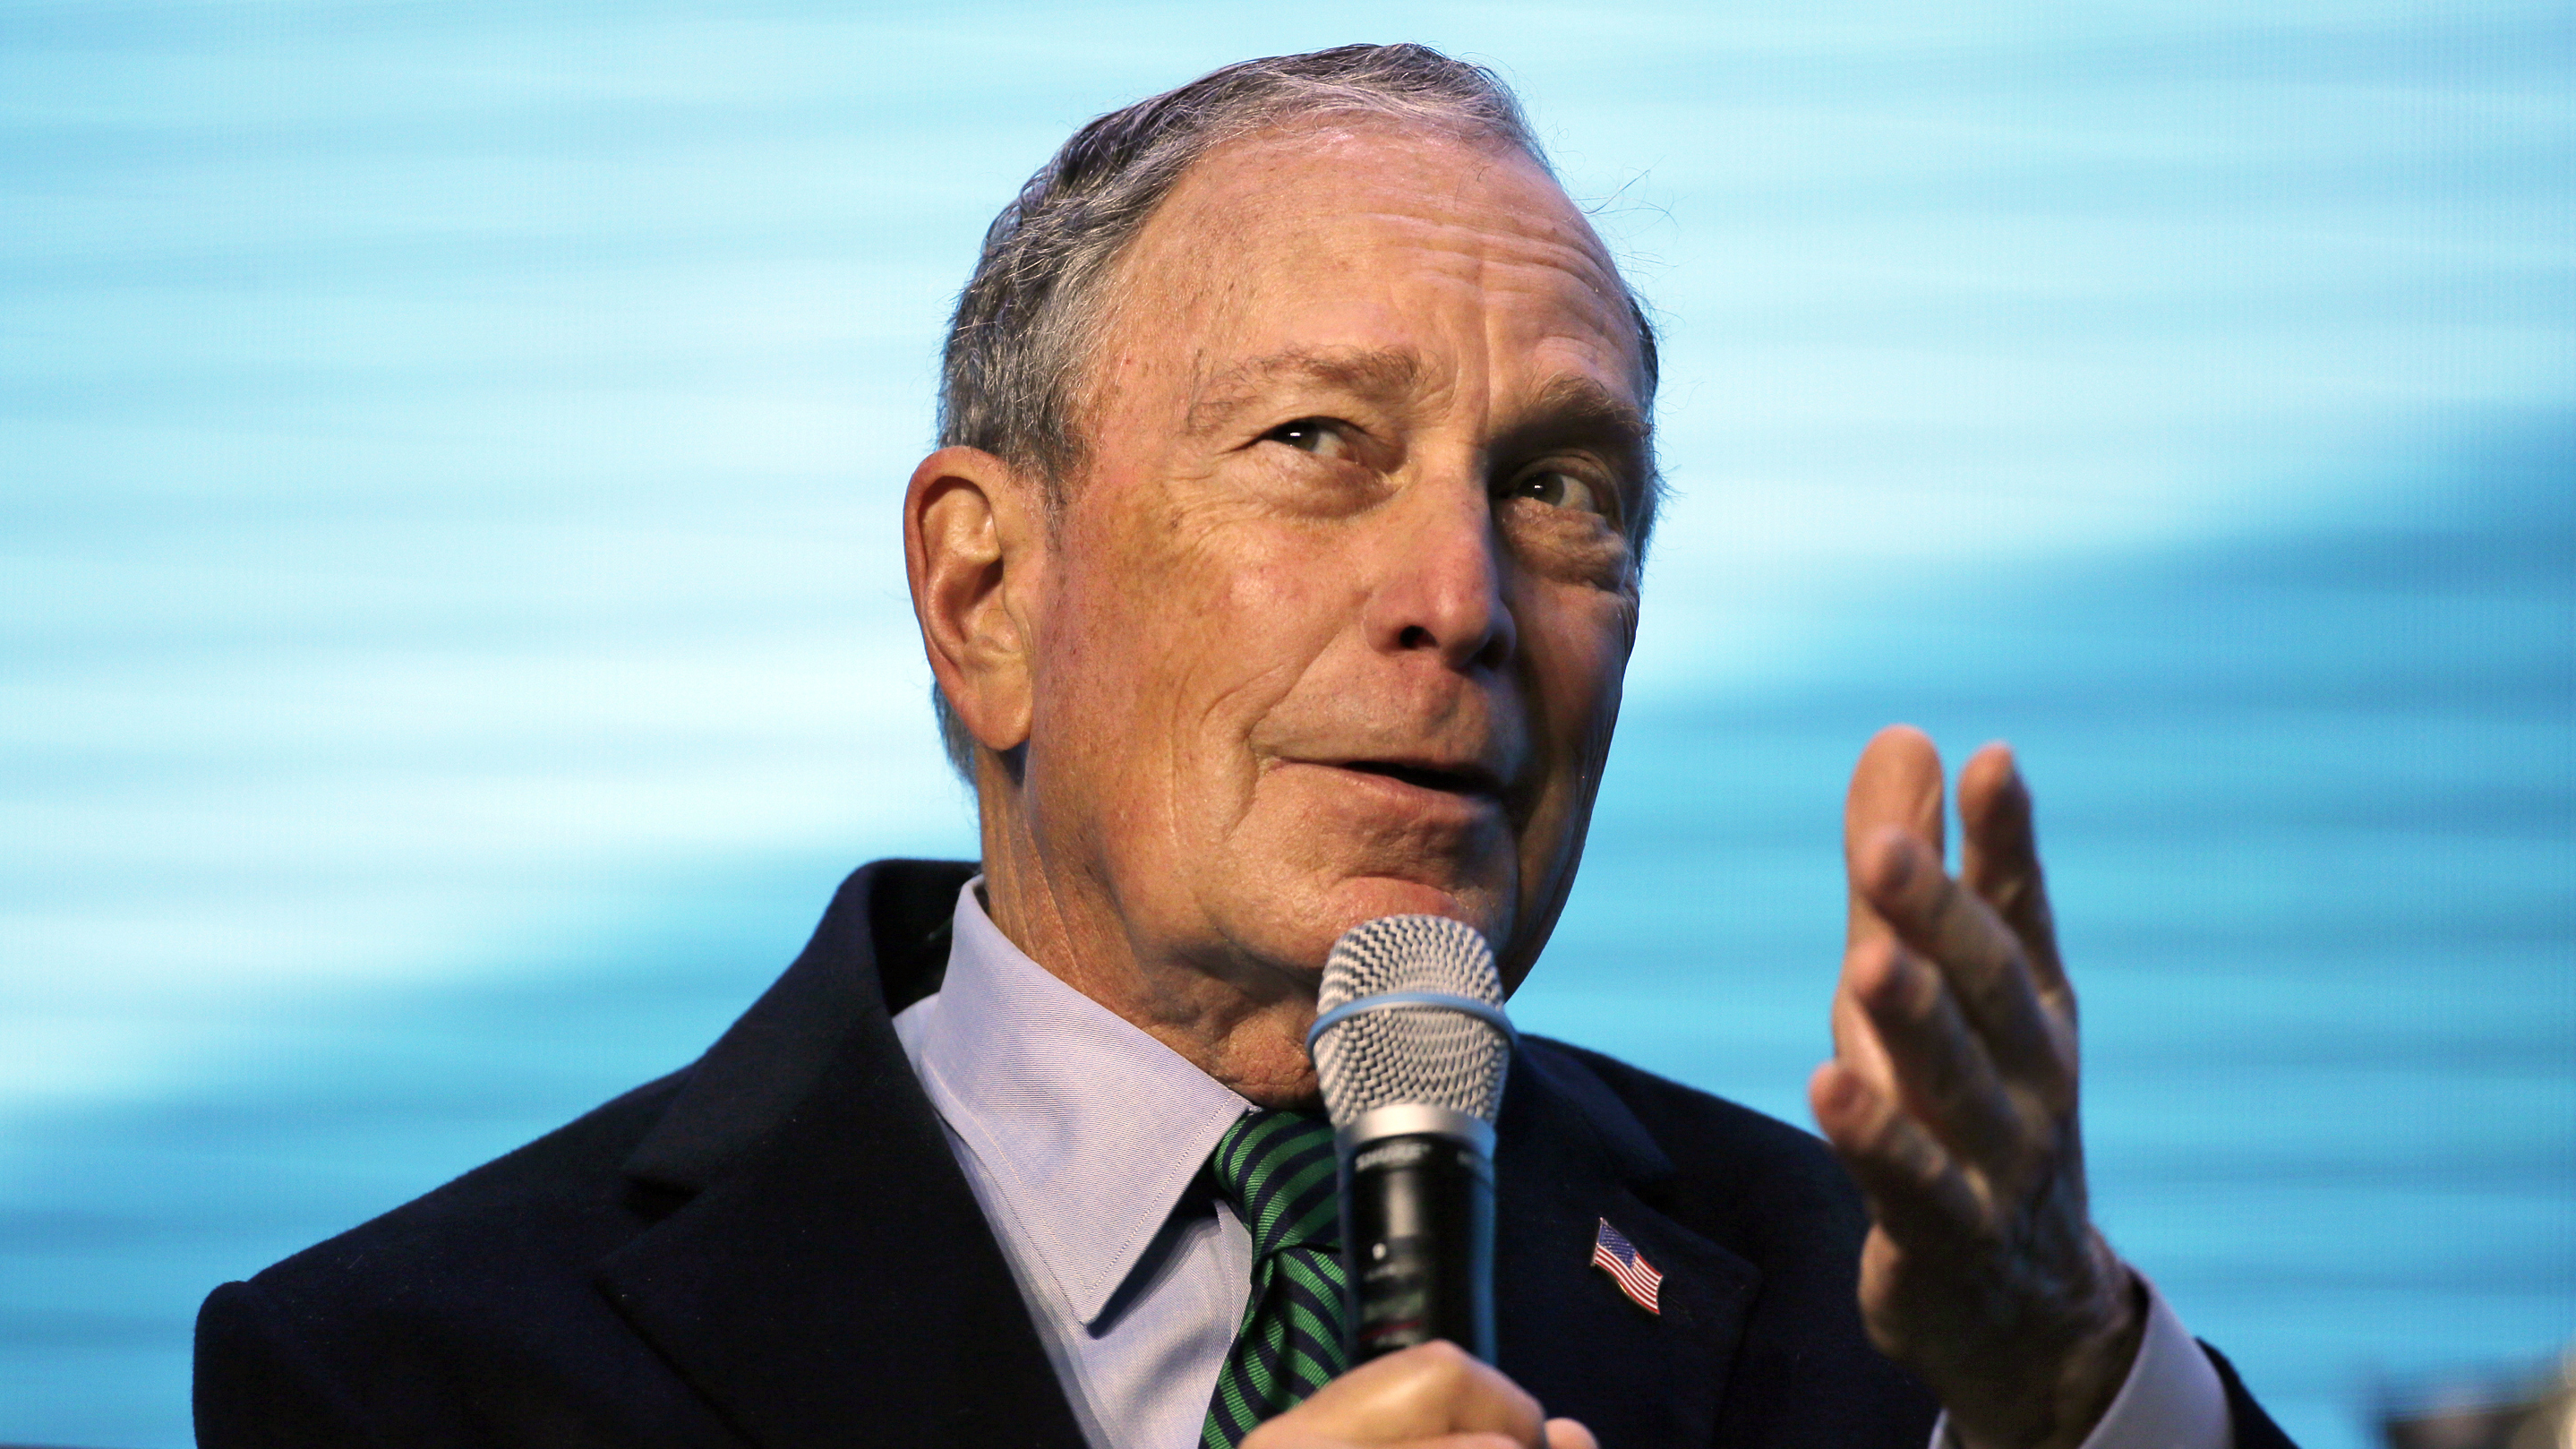 Michael Bloomberg prison labor presidential campaign Democrat 2020 jpg?quality=75&strip=all&w=1400.'